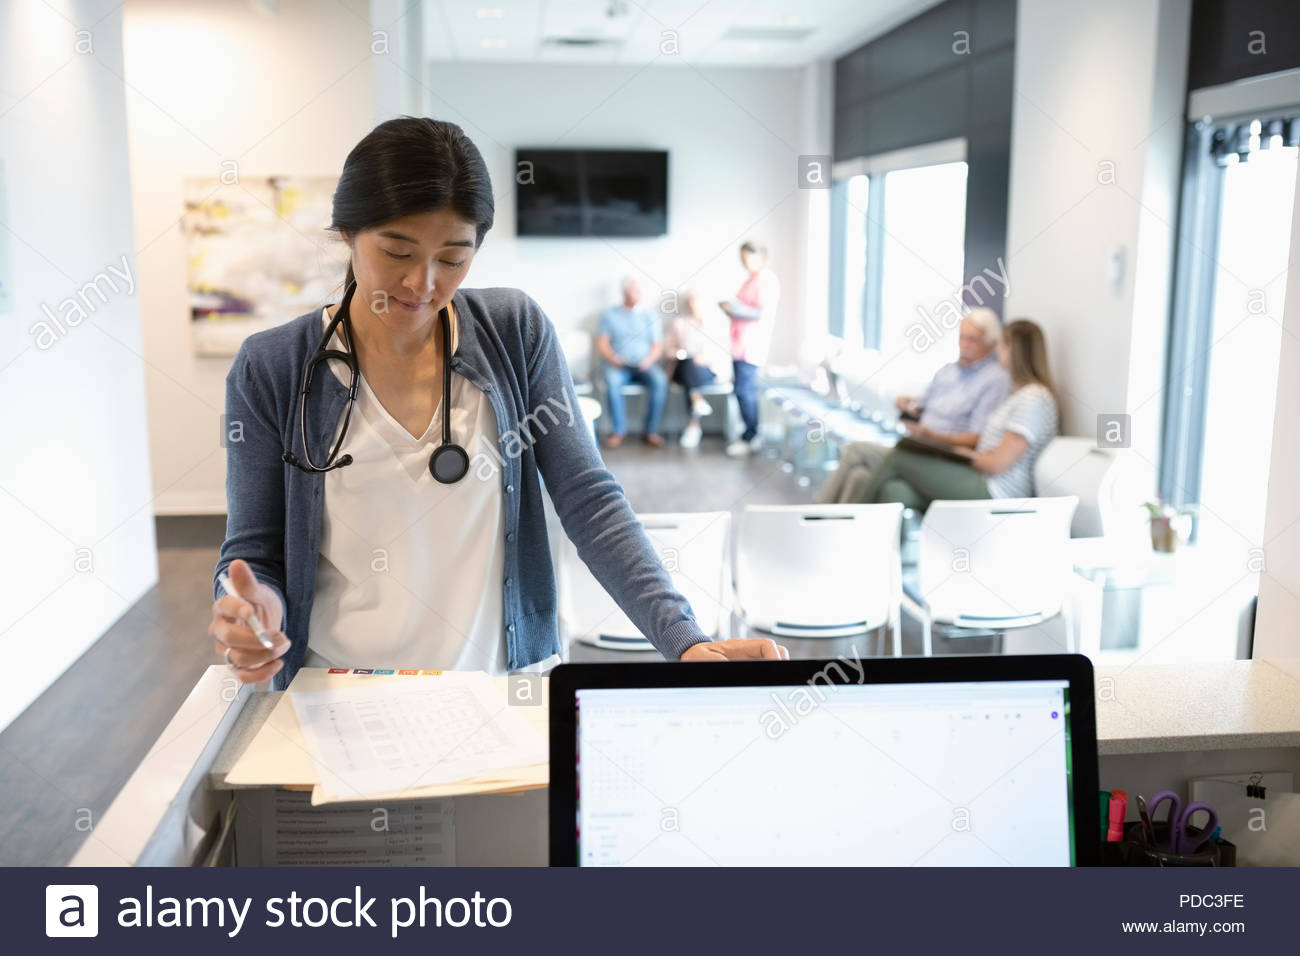 Female doctor reviewing medical record at clinic reception desk - Stock Image